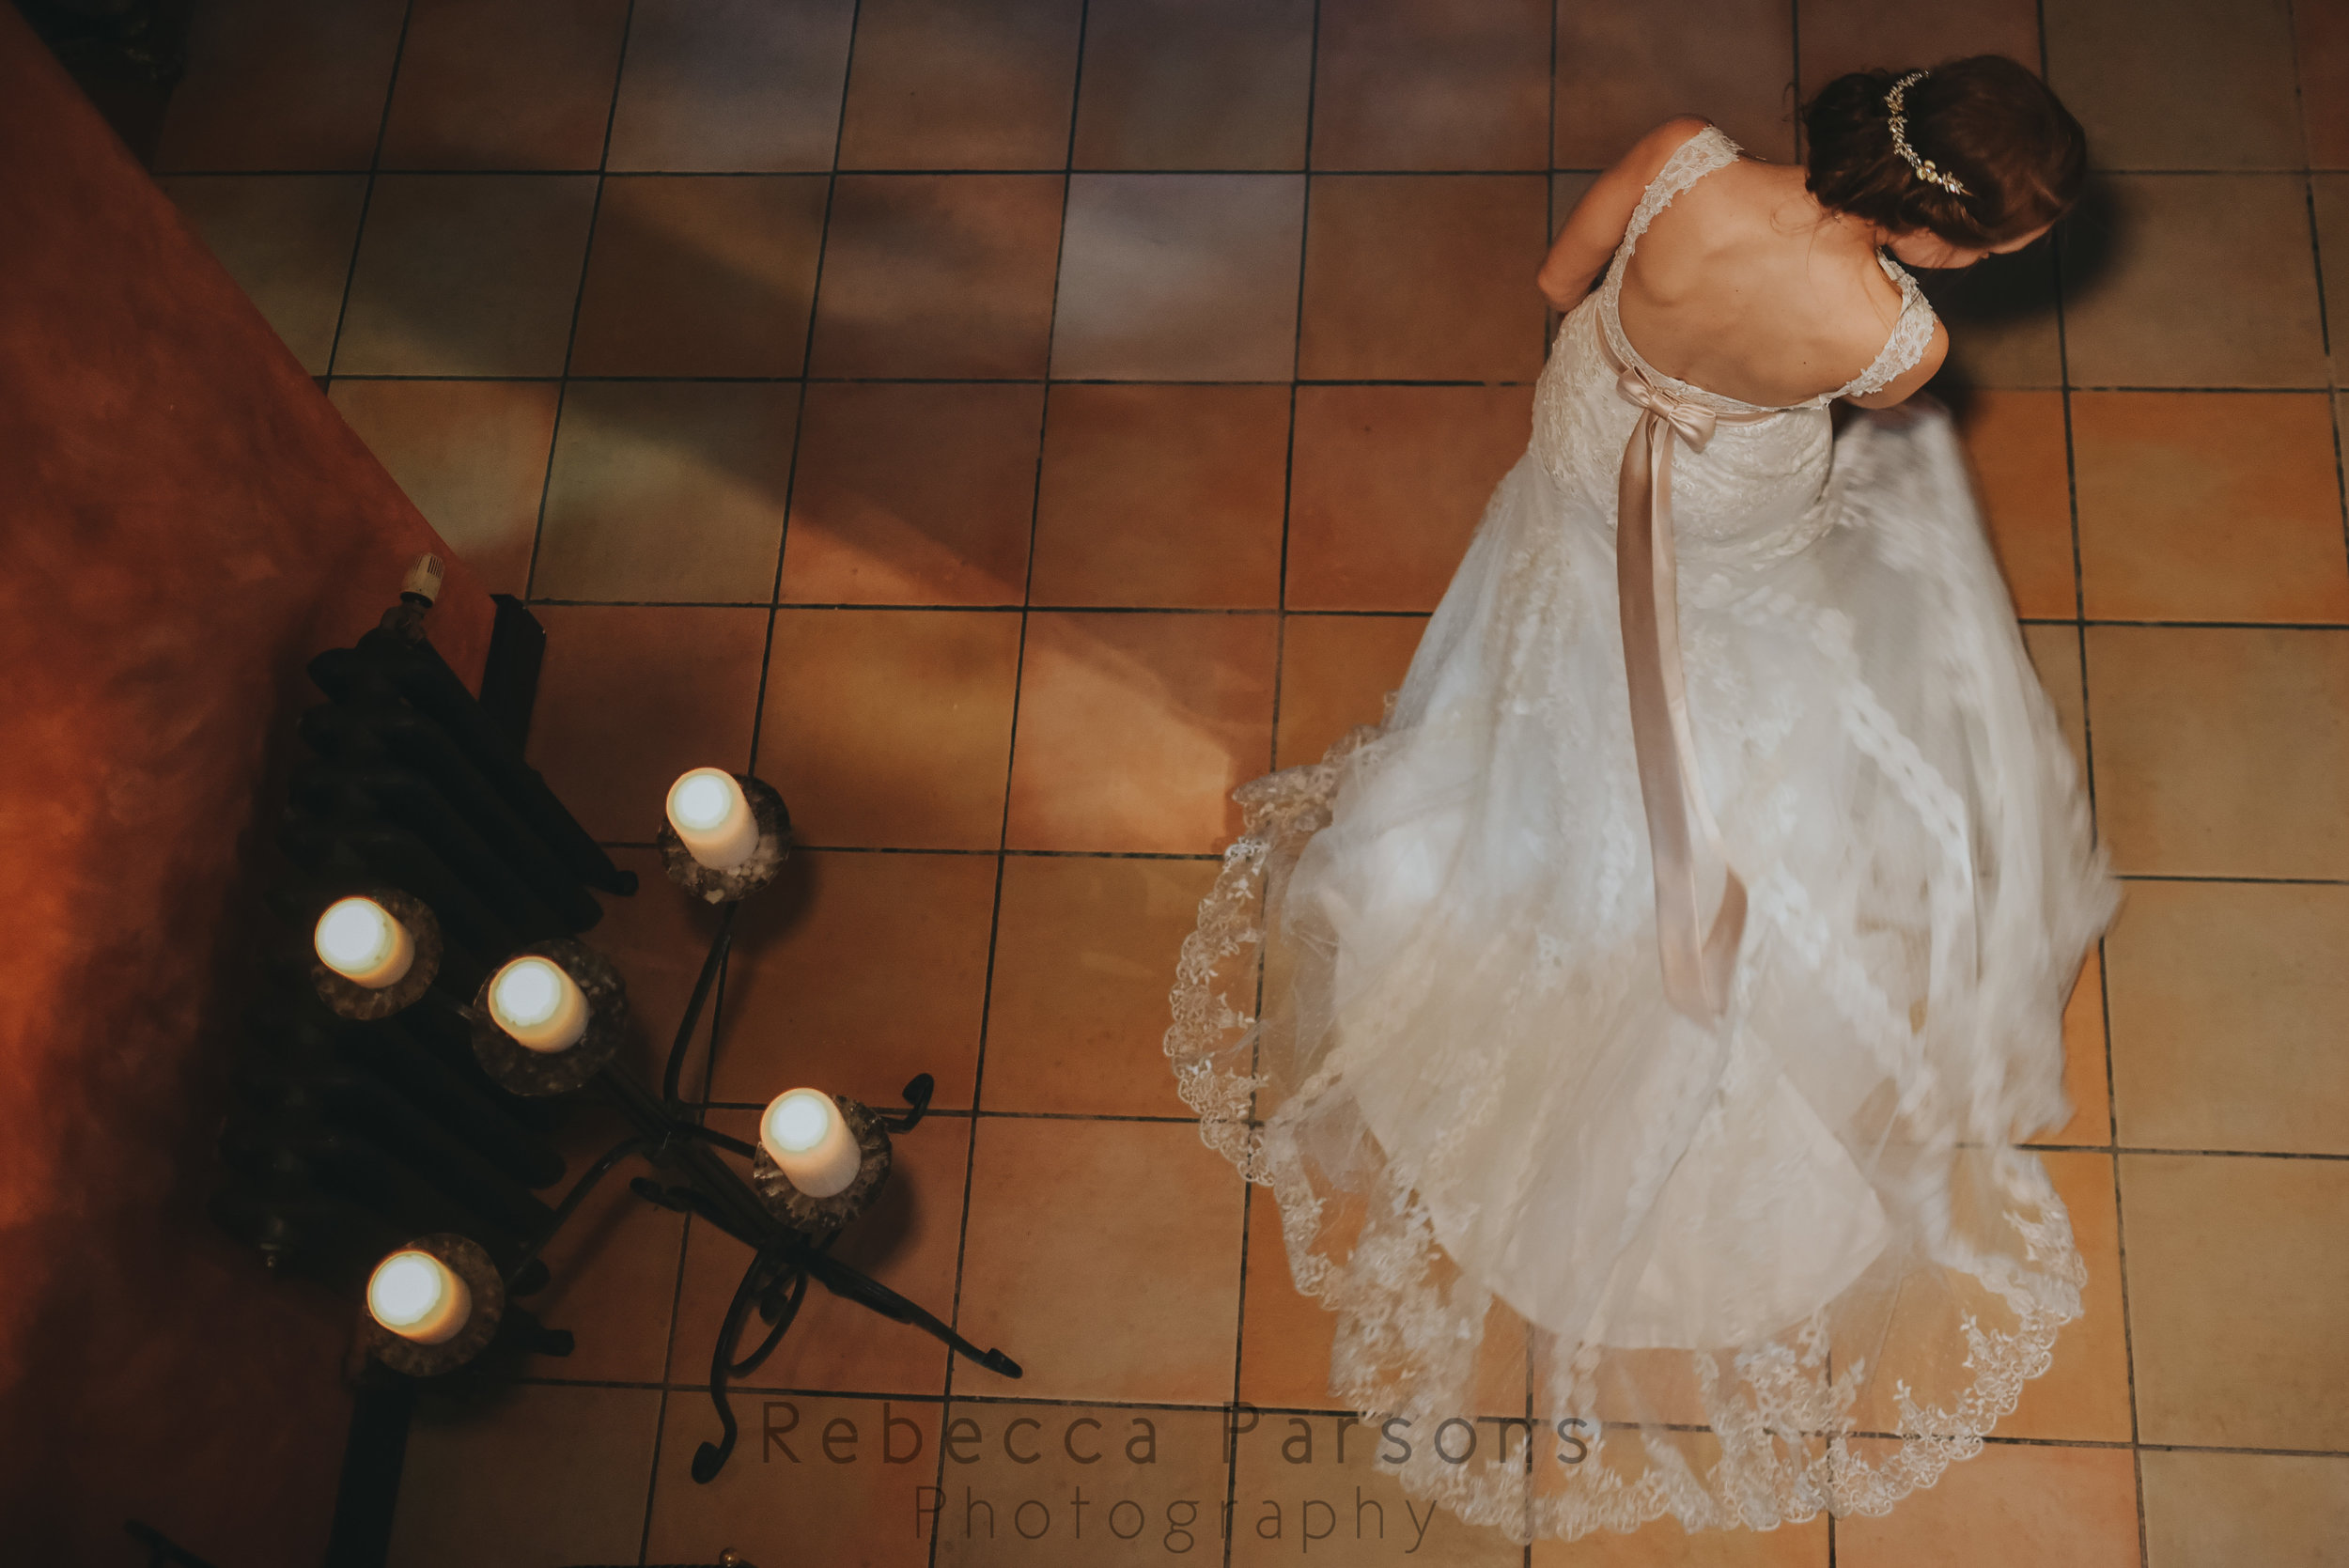 The bride standing by candles and adjusting her dress